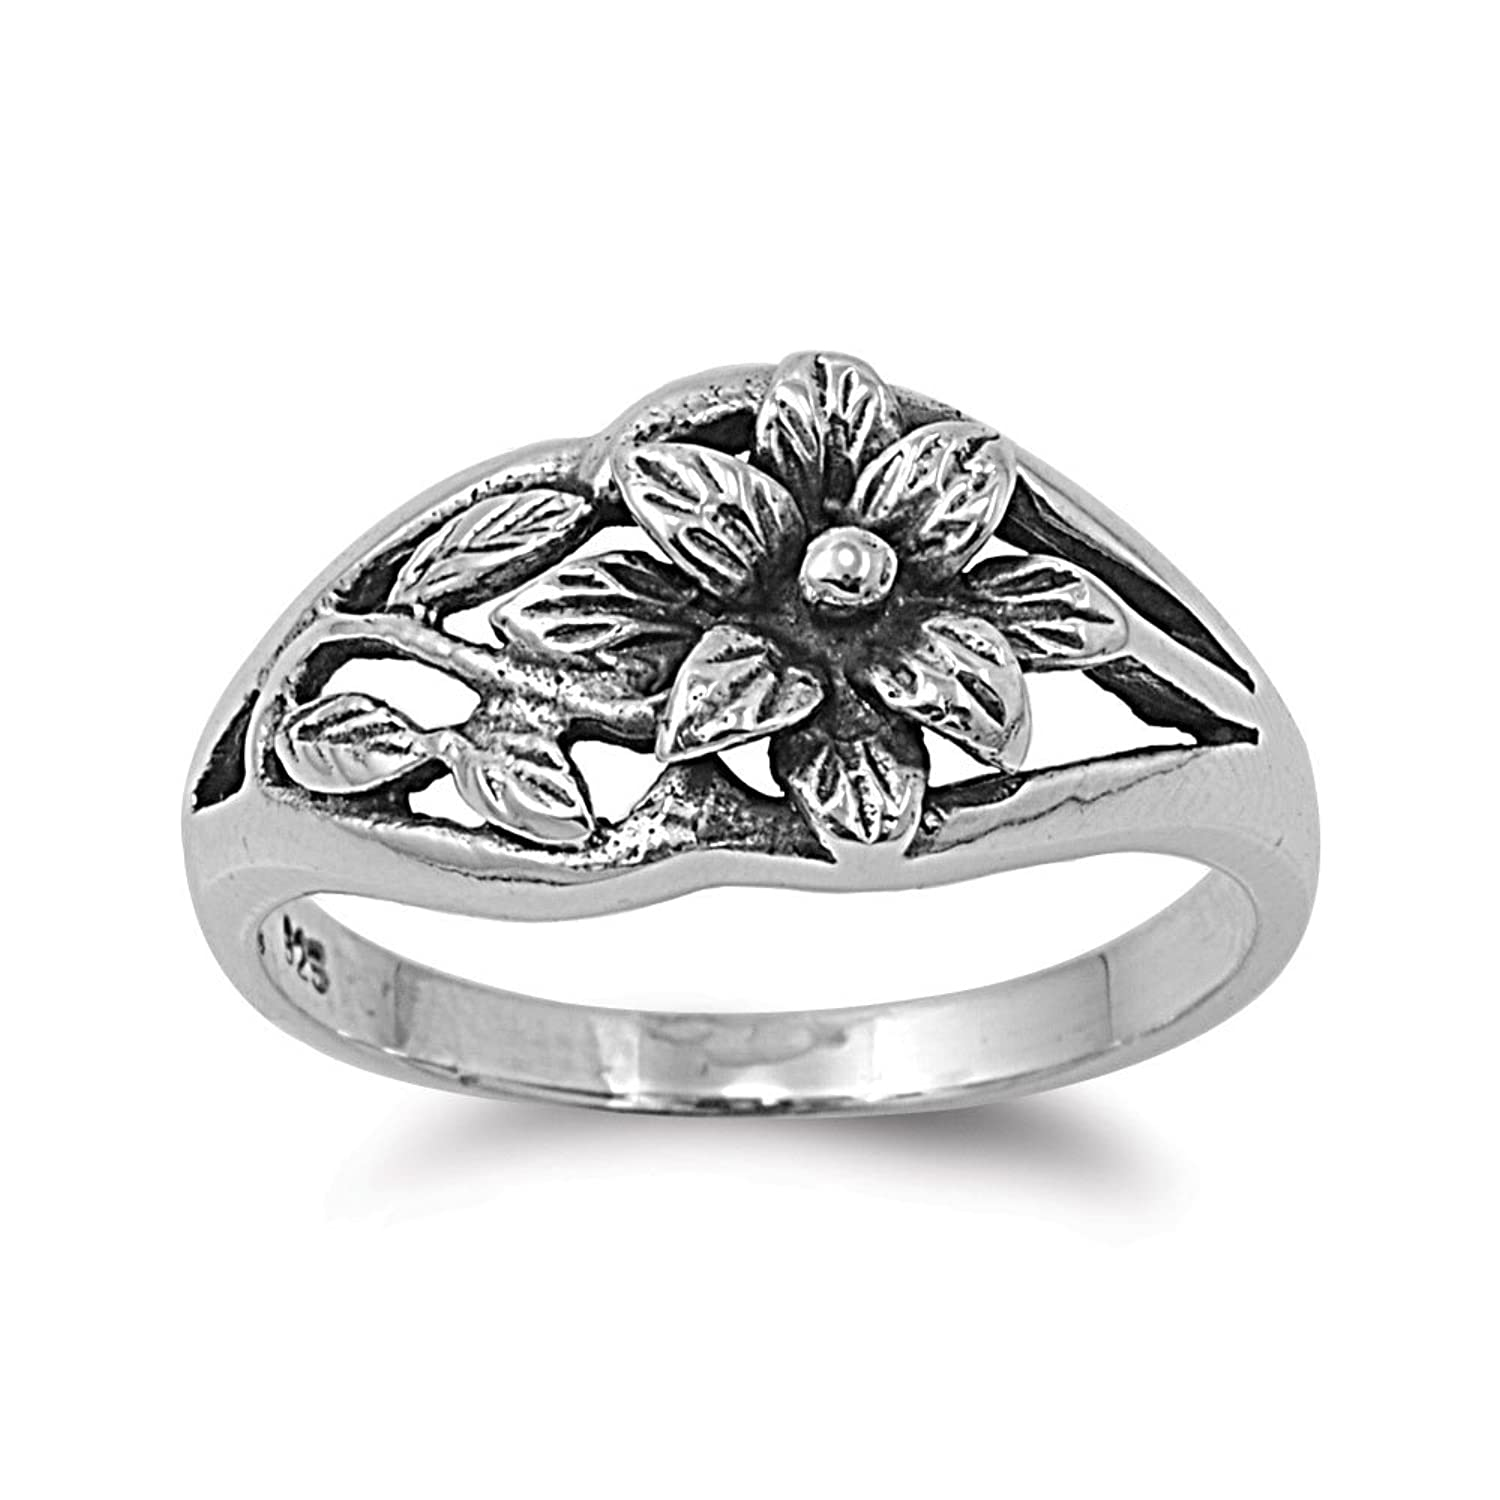 blogs lotus set ritchie ring flower shapes engagement chris a platinum diamond showcase band wedding rings using and hidden creations petal